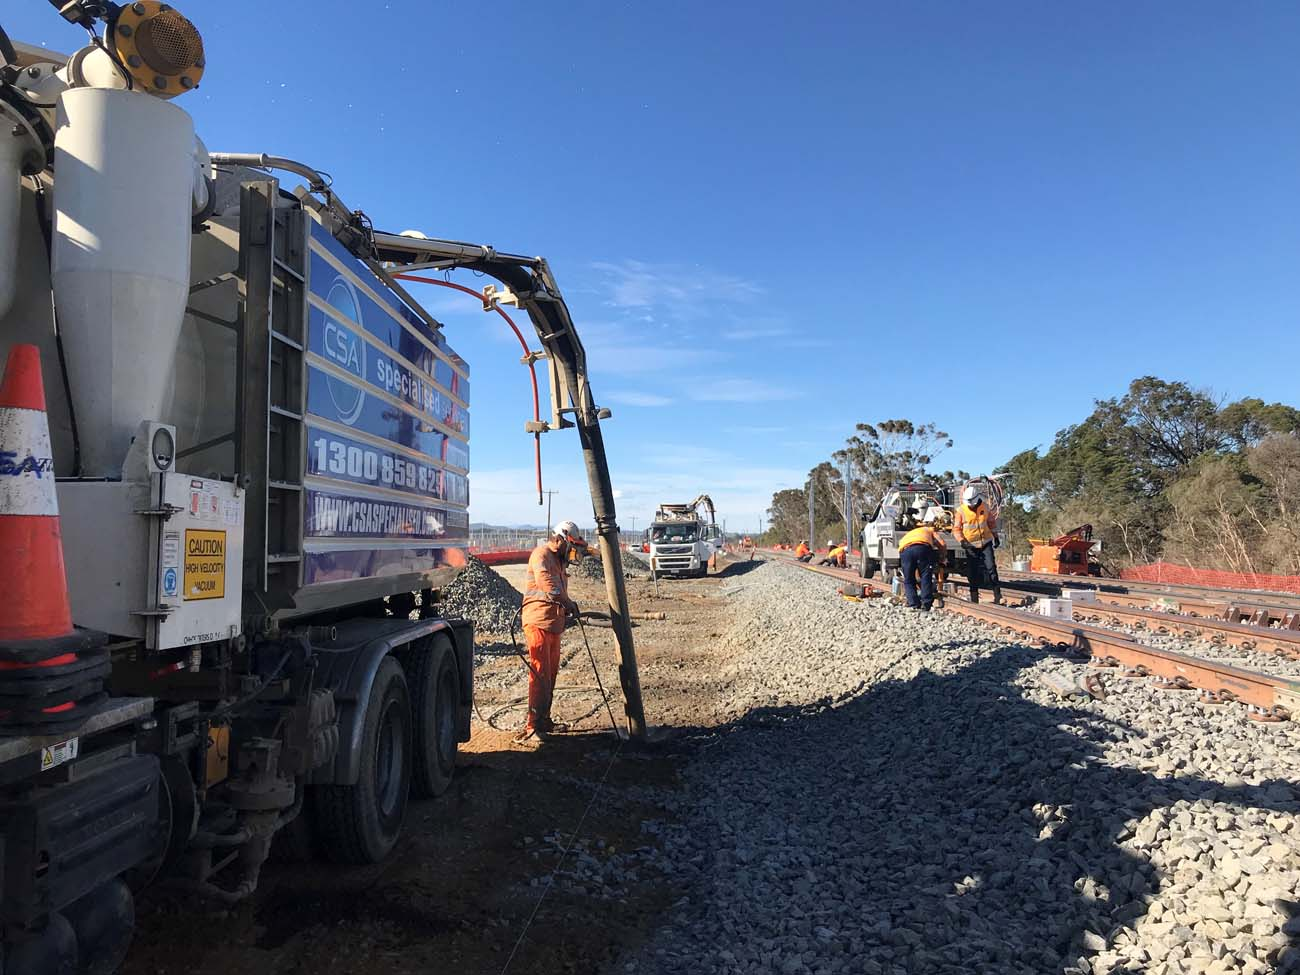 Non-Destructive Digging by CSA Specialised Services